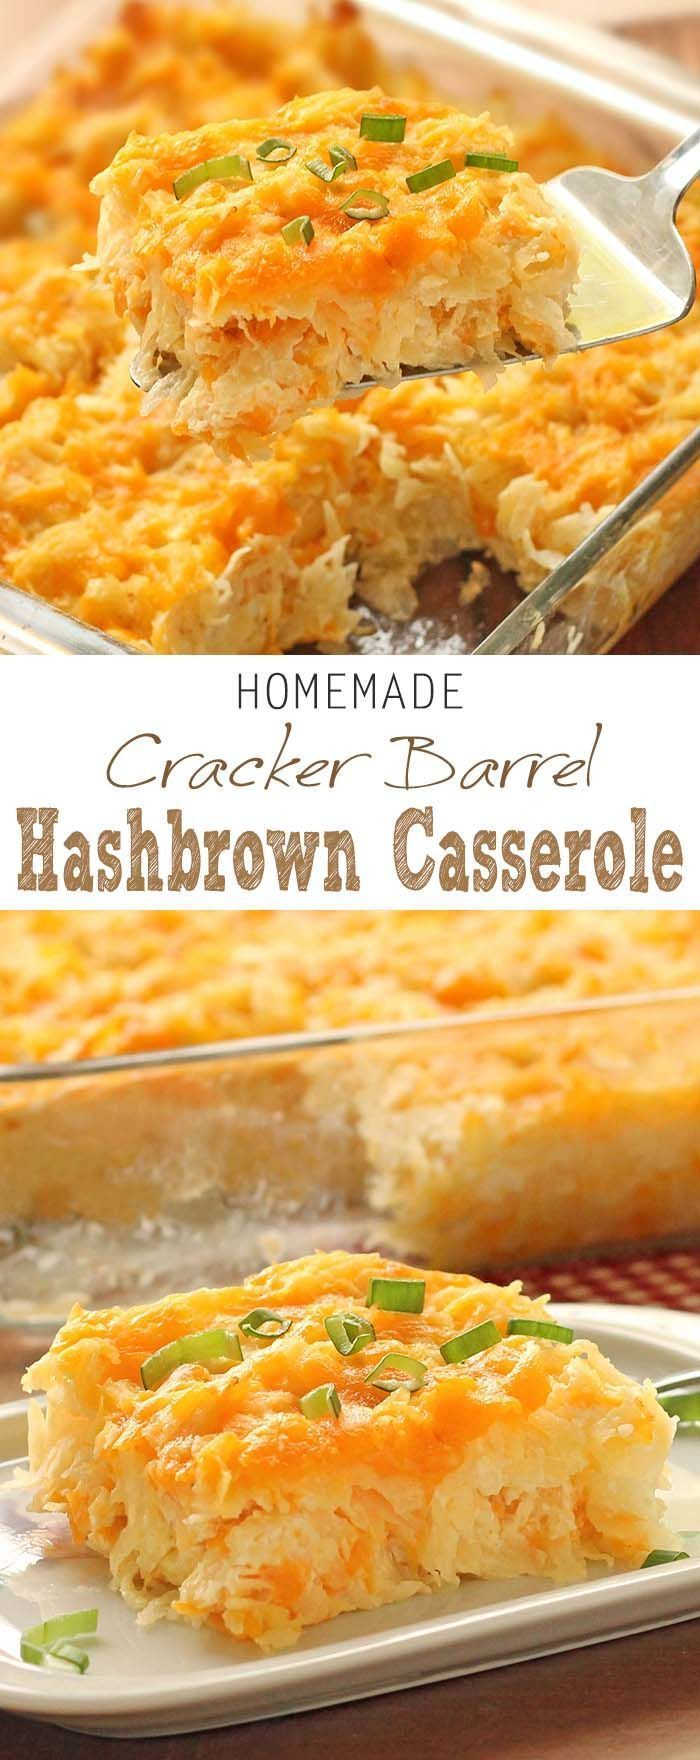 Homemade Cracker Barrel HashBrown Casserole ~ Super easy to whip up, but grants you restaurant quality taste right in your own kitchen.